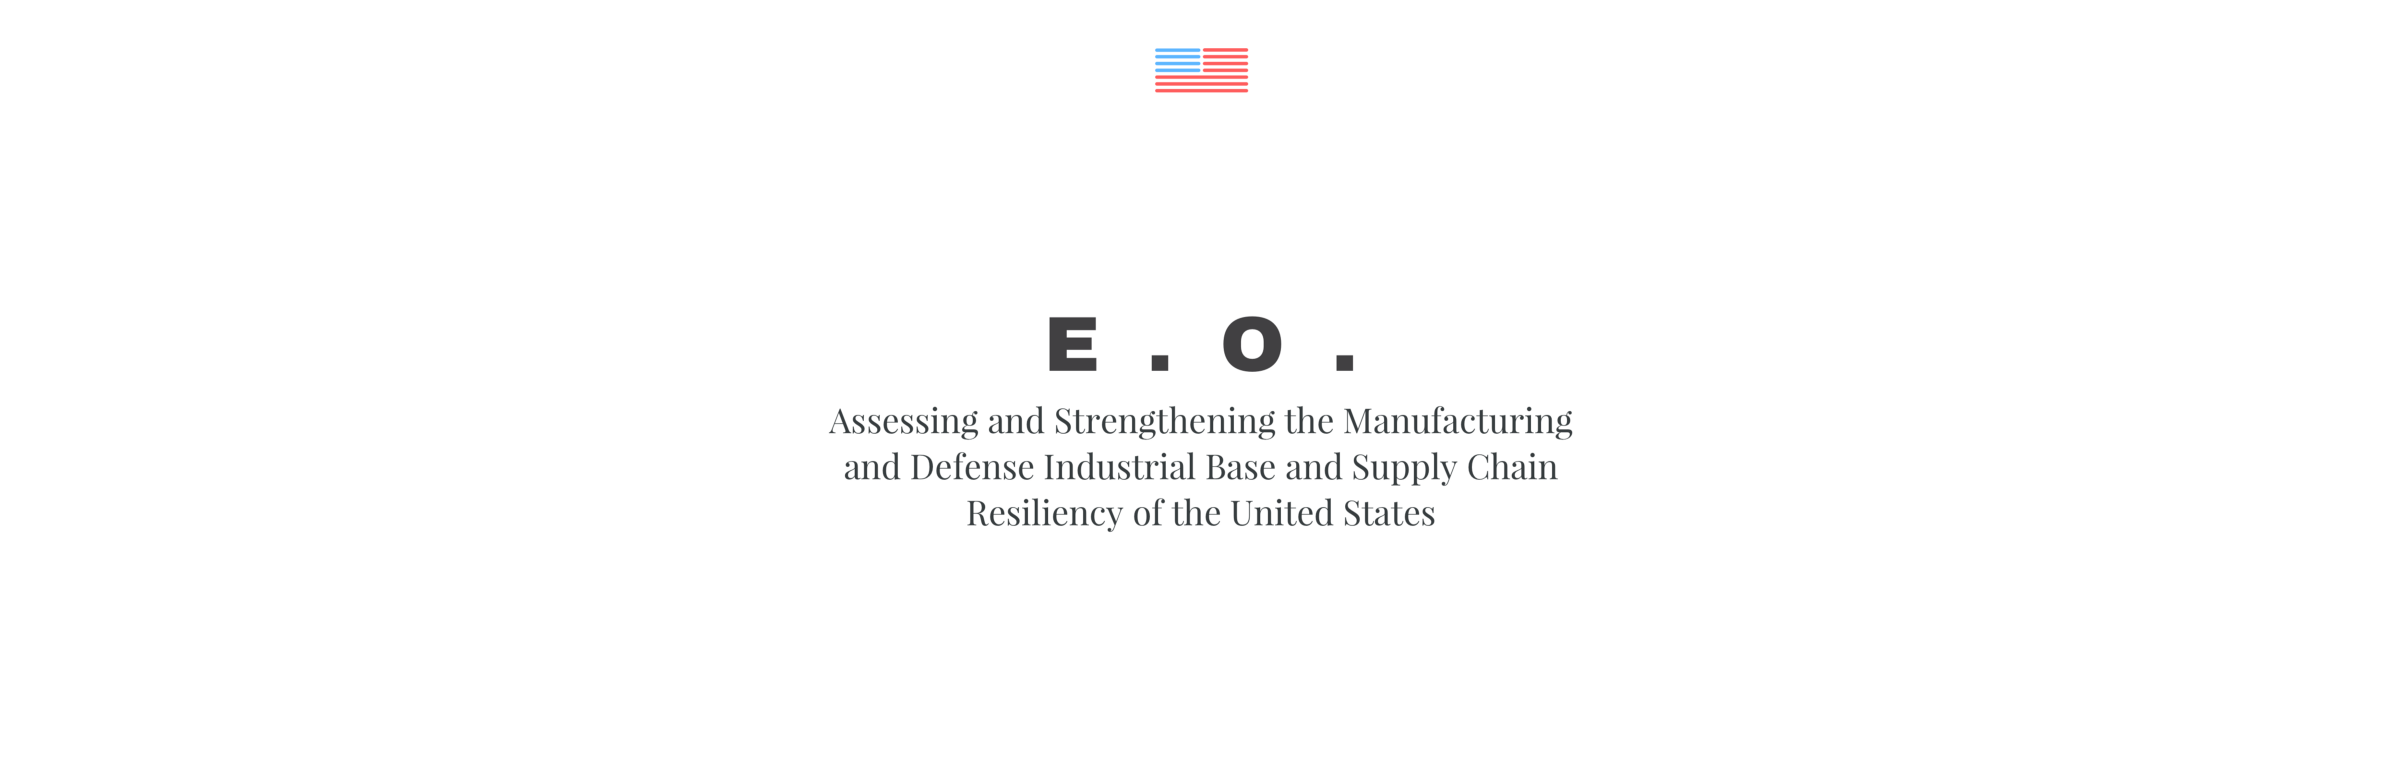 EO: Assessing and Strengthening the Manufacturing and